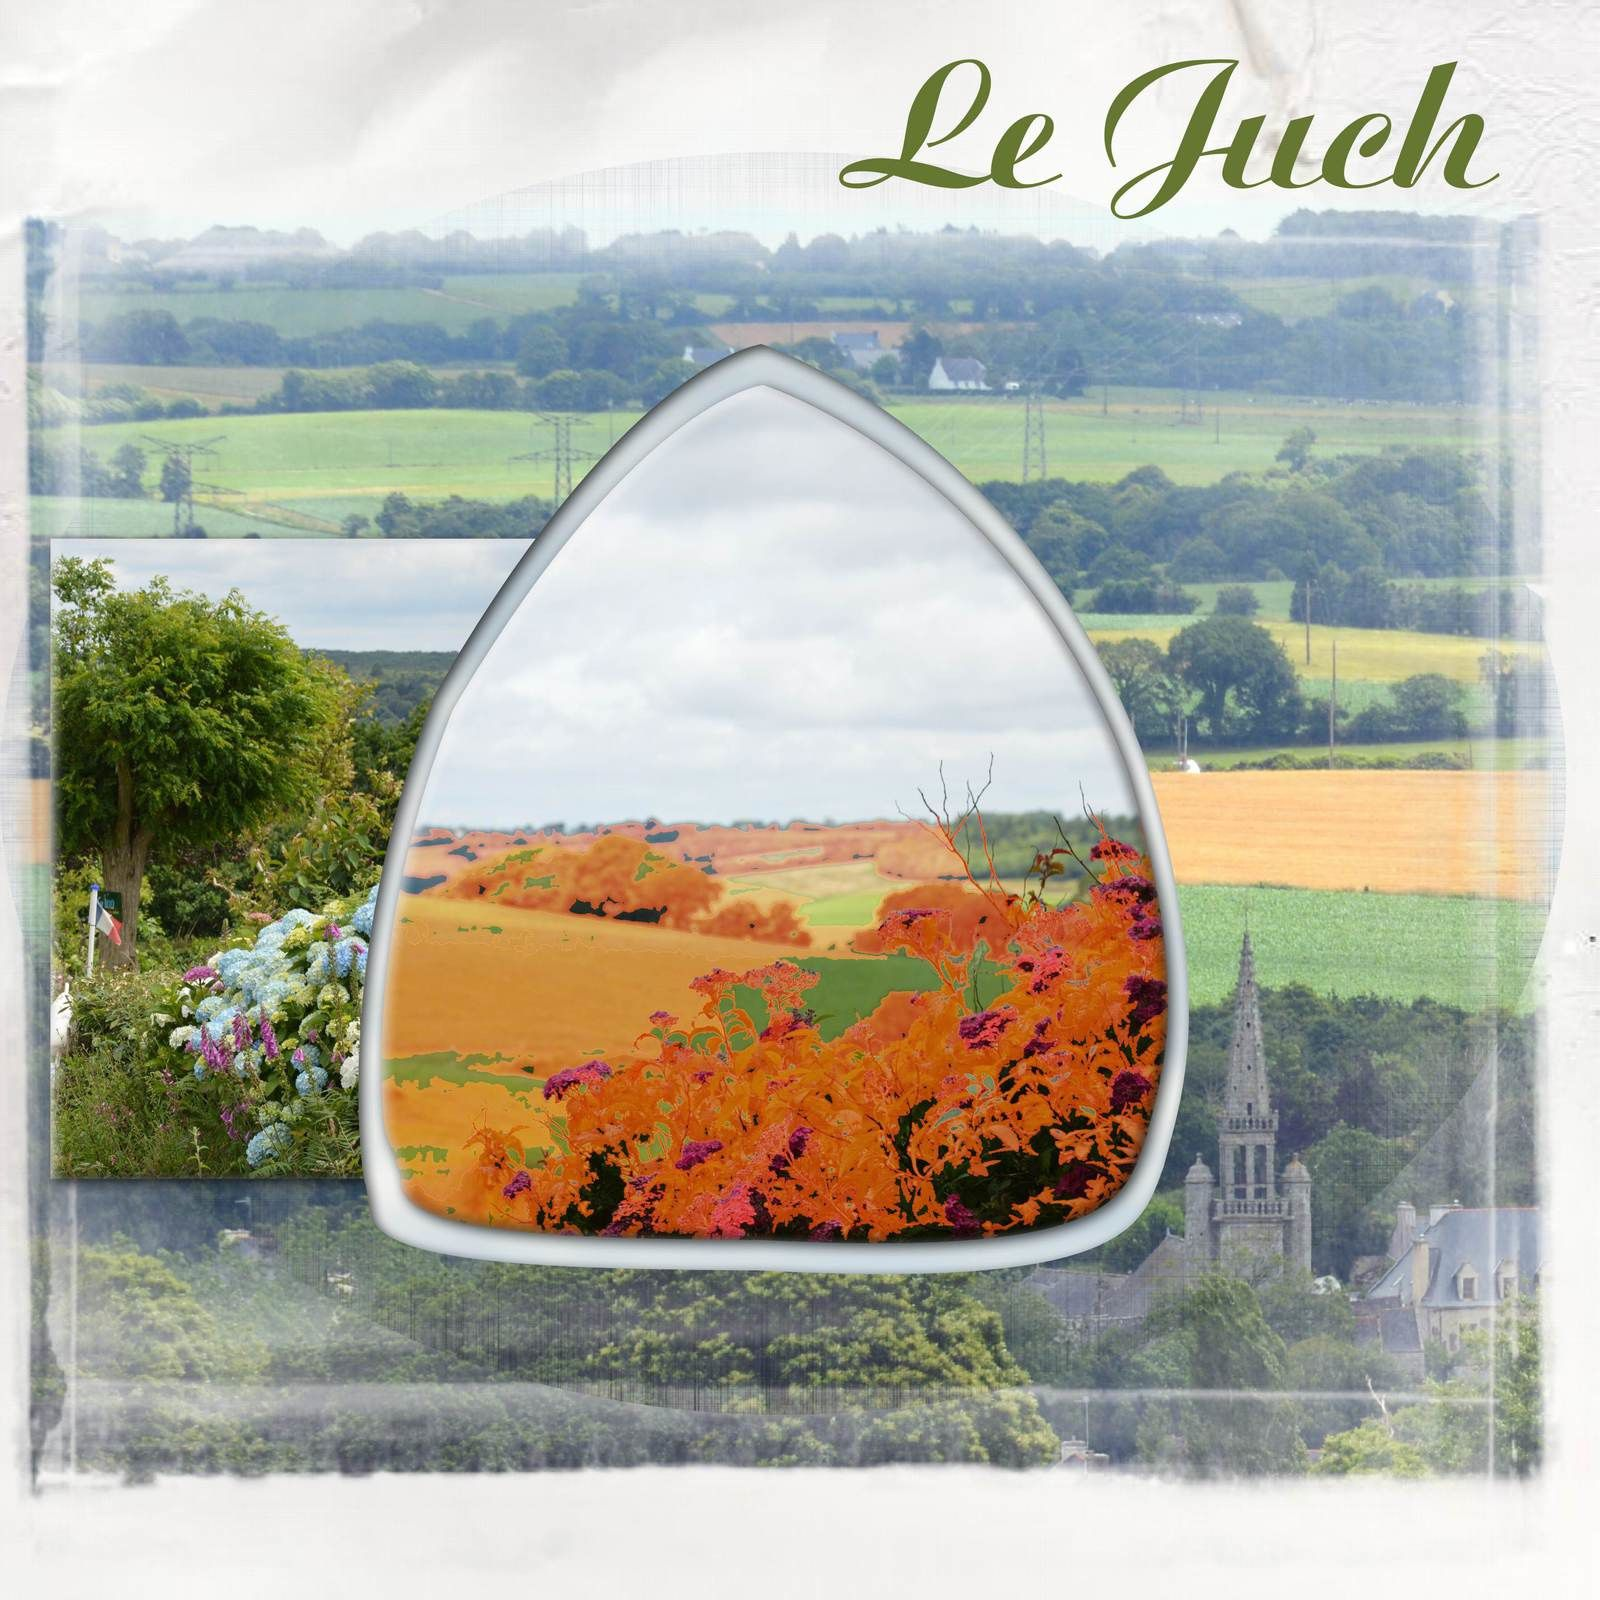 LE JUCH